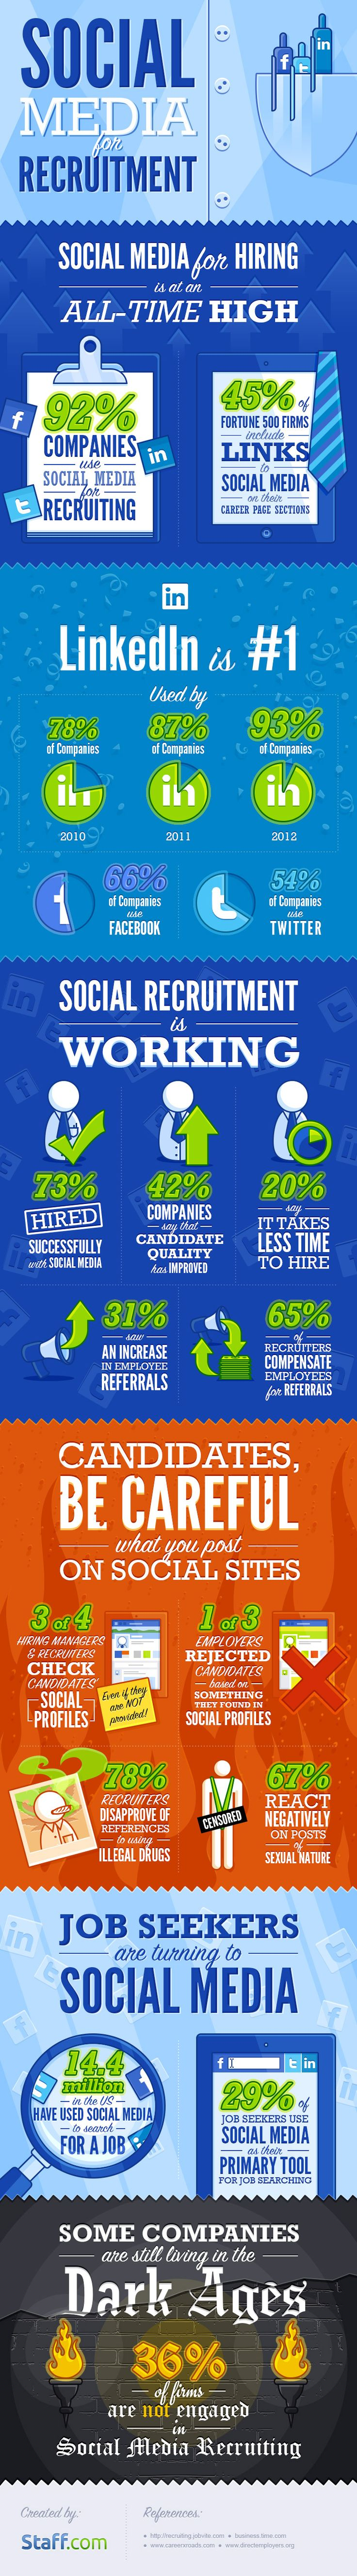 Social recruiting revolution #infographic #socialrecruiting